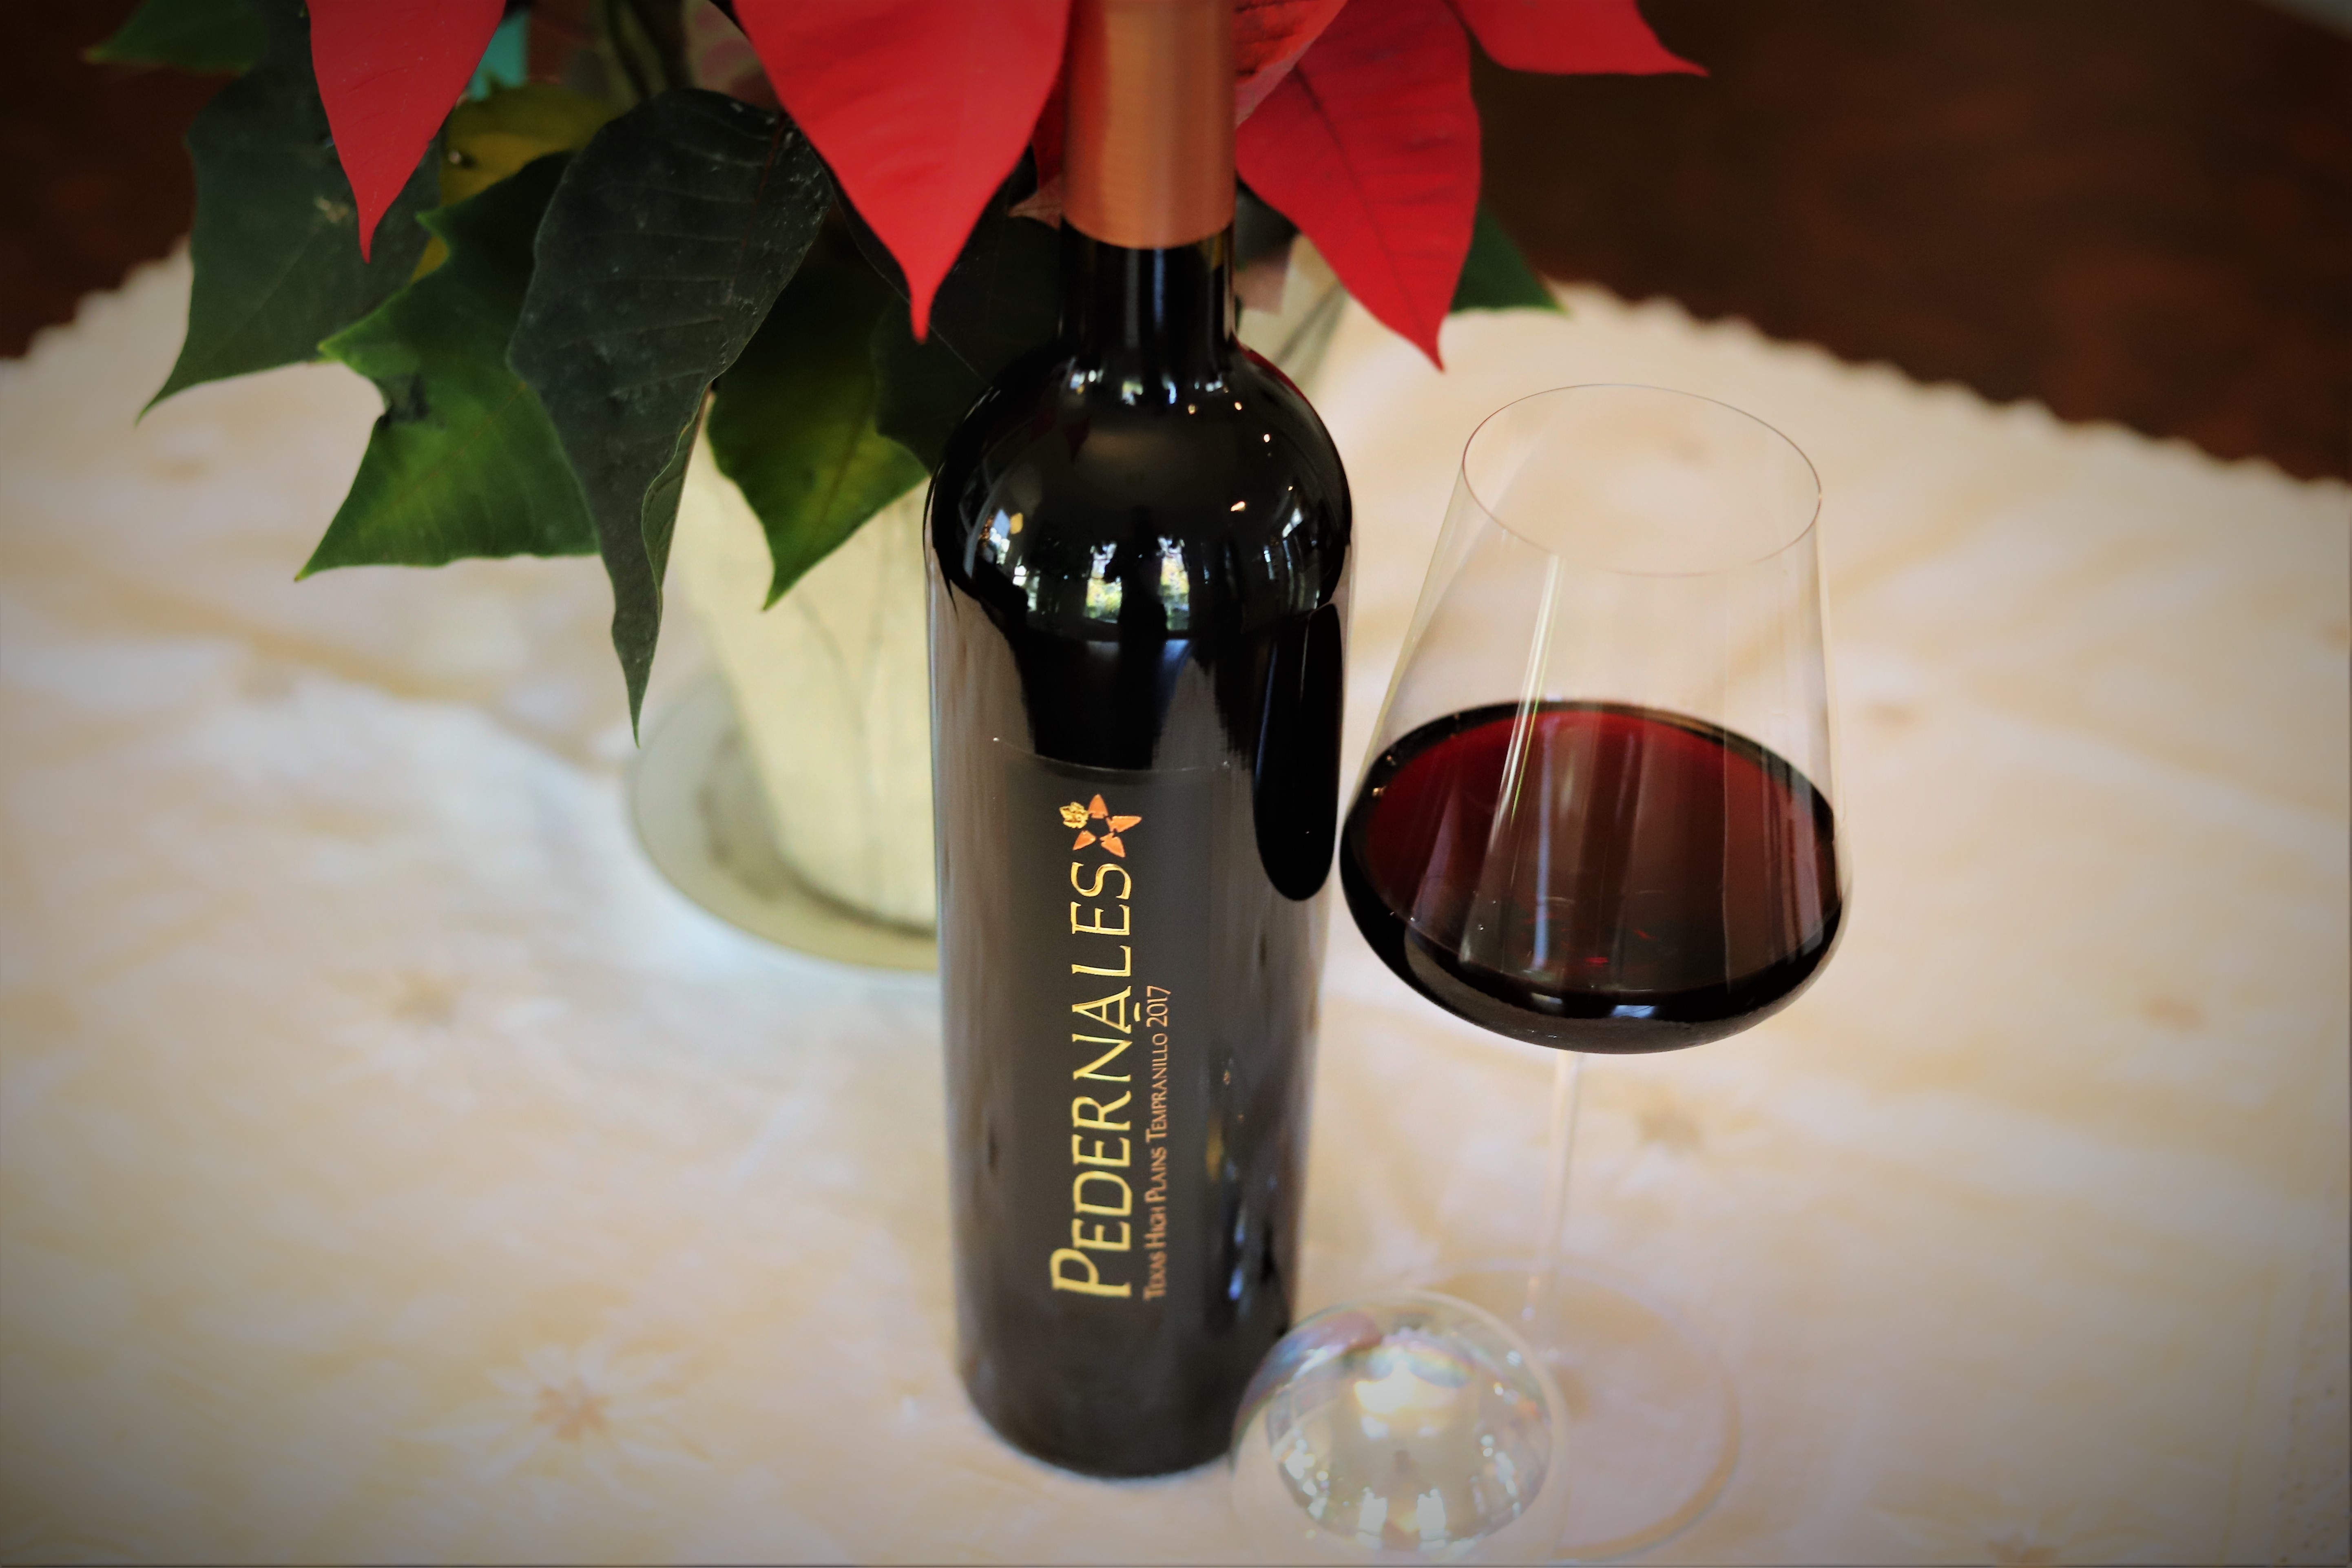 Pedernales Cellars High Plains Tempranillo